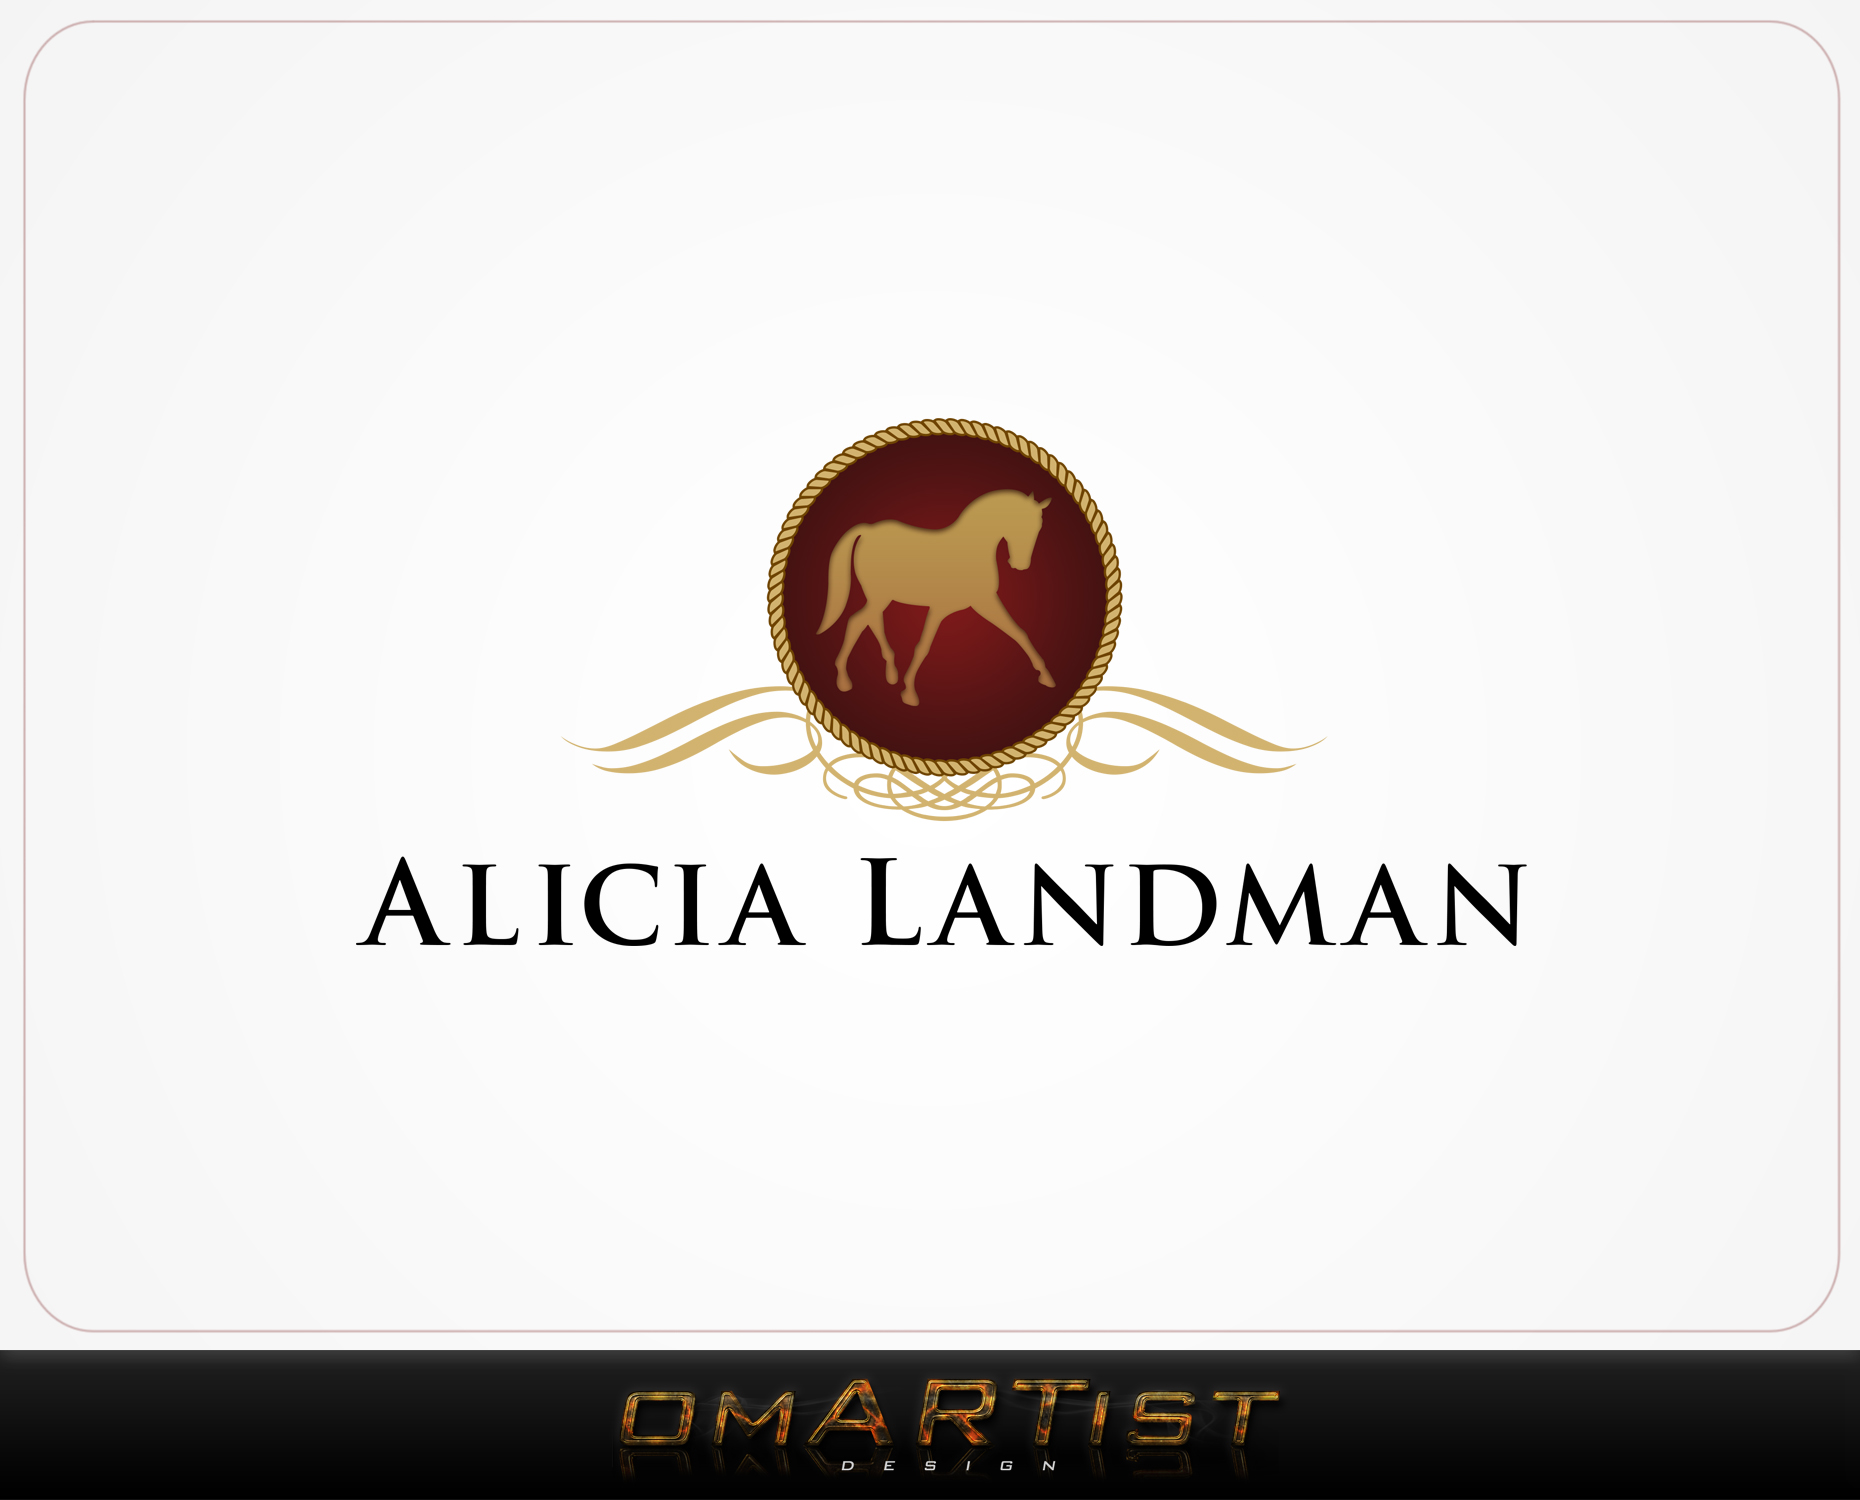 Logo Design by omARTist - Entry No. 68 in the Logo Design Contest Fun Logo Design for Alicia Landman.